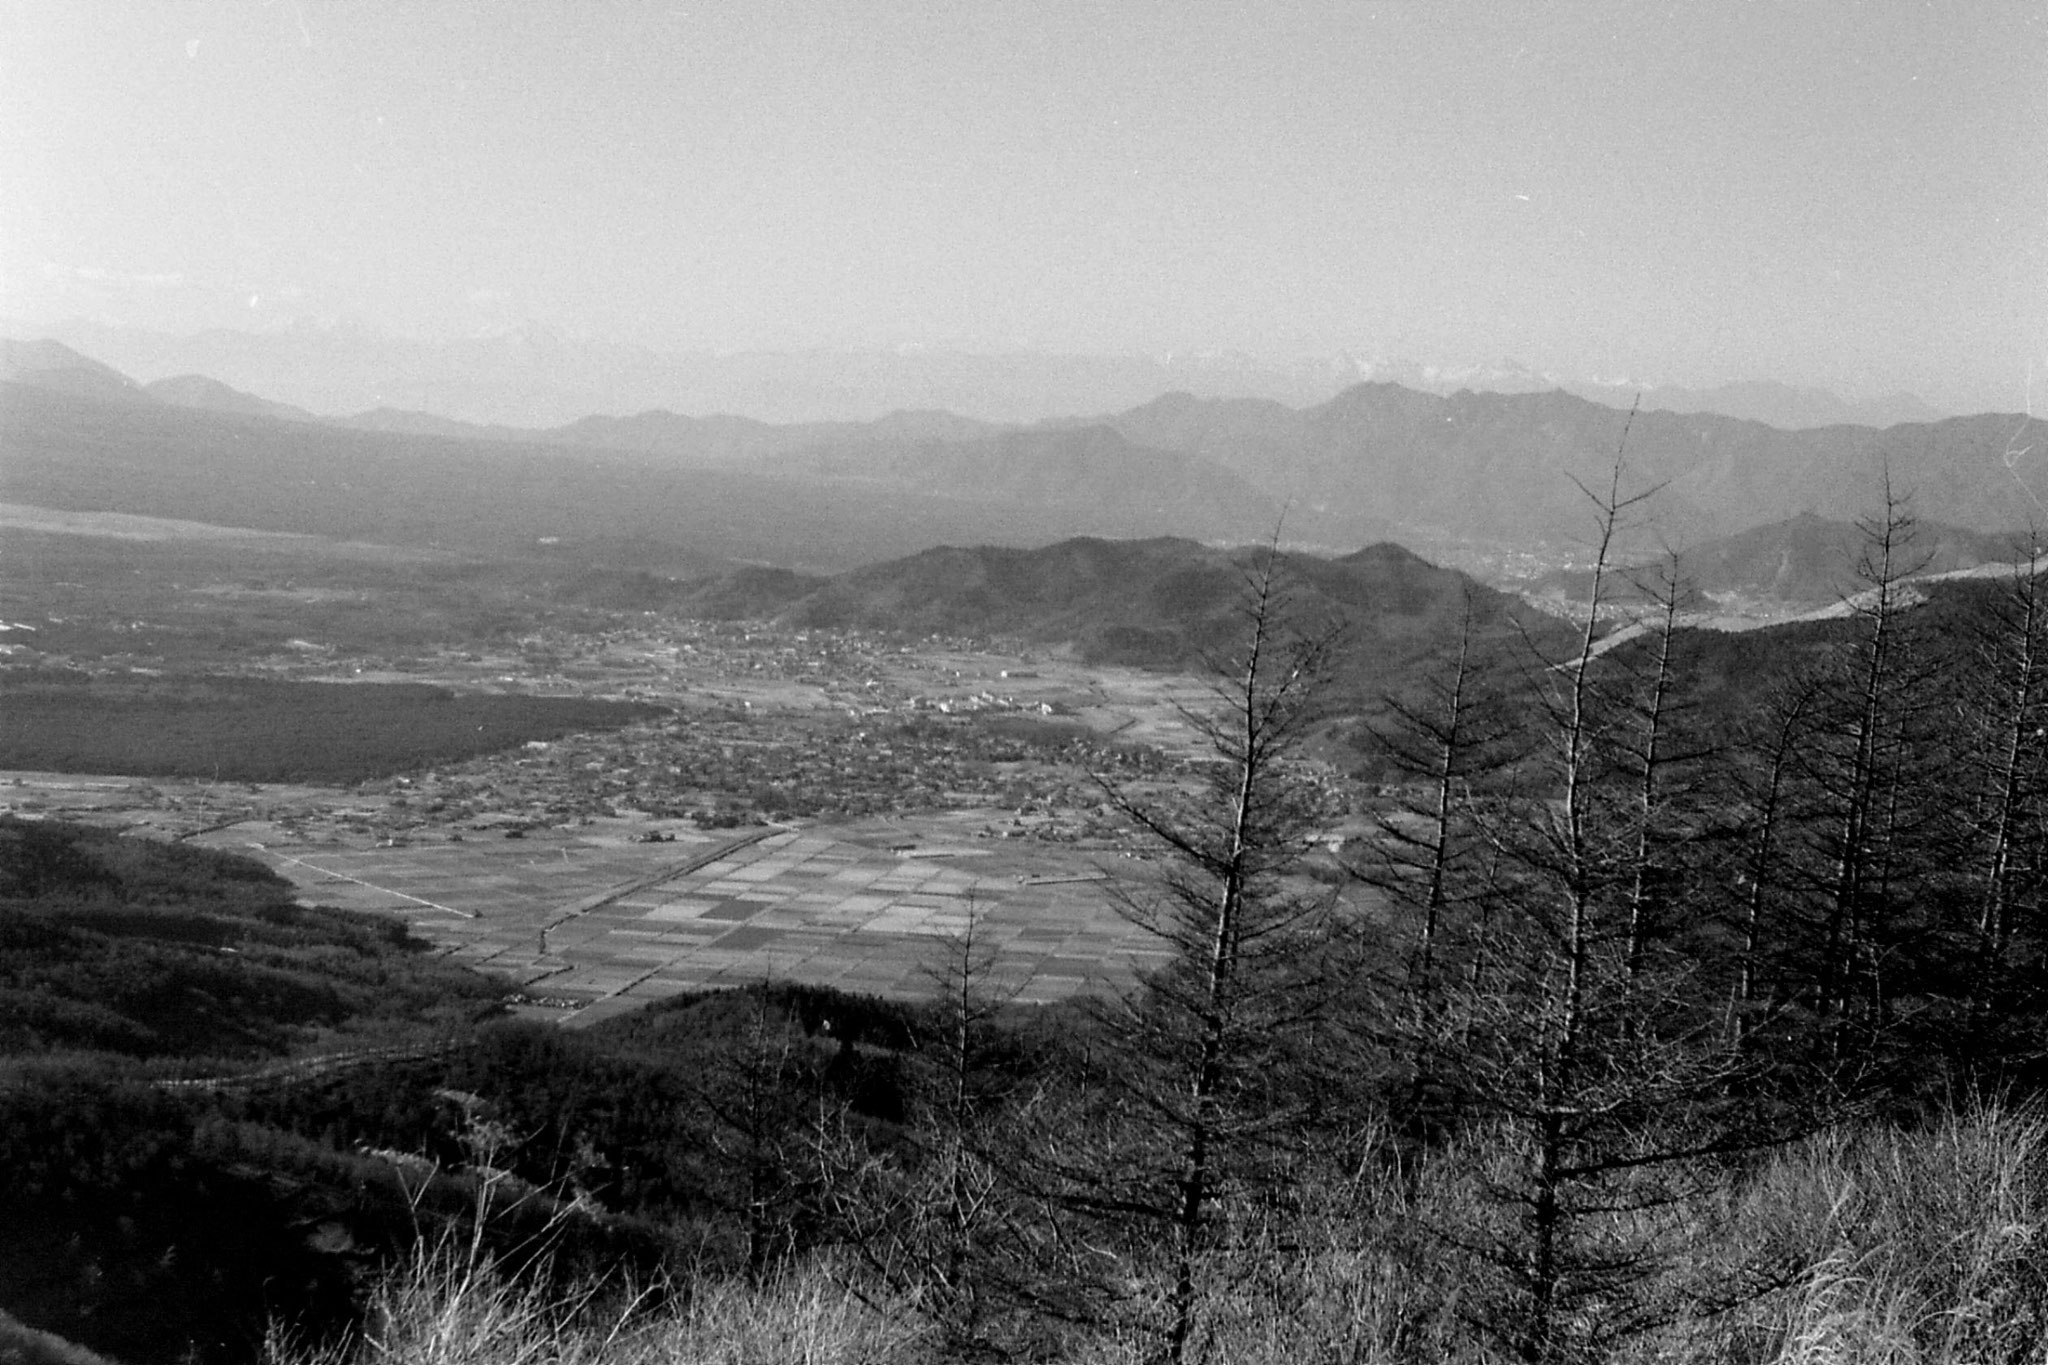 30/12/1988: 2: from top of Ishiwari